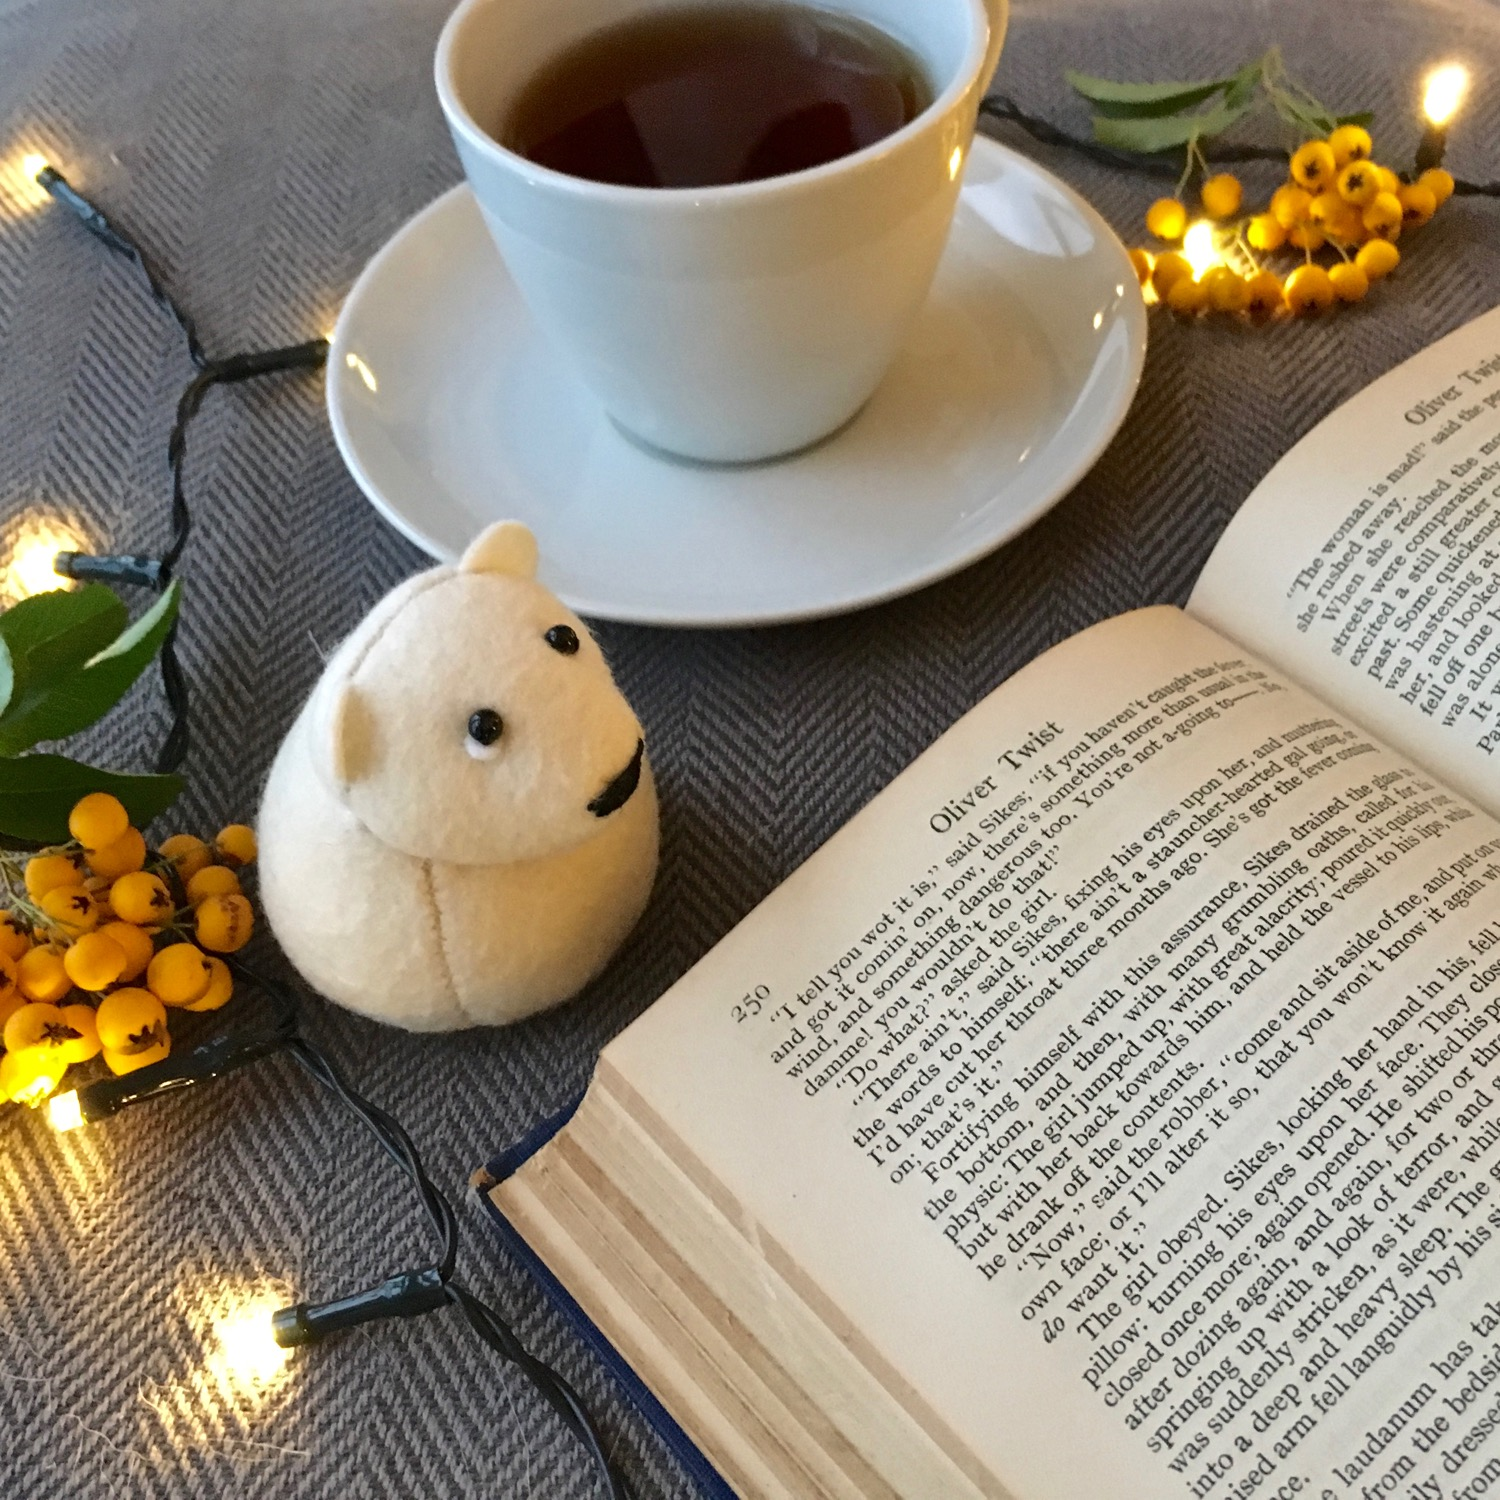 Onni the Polar Bear paperweight | an ideal bookworm's companion | handmade from Kunin eco felt | by Bilberry Woods.jpg